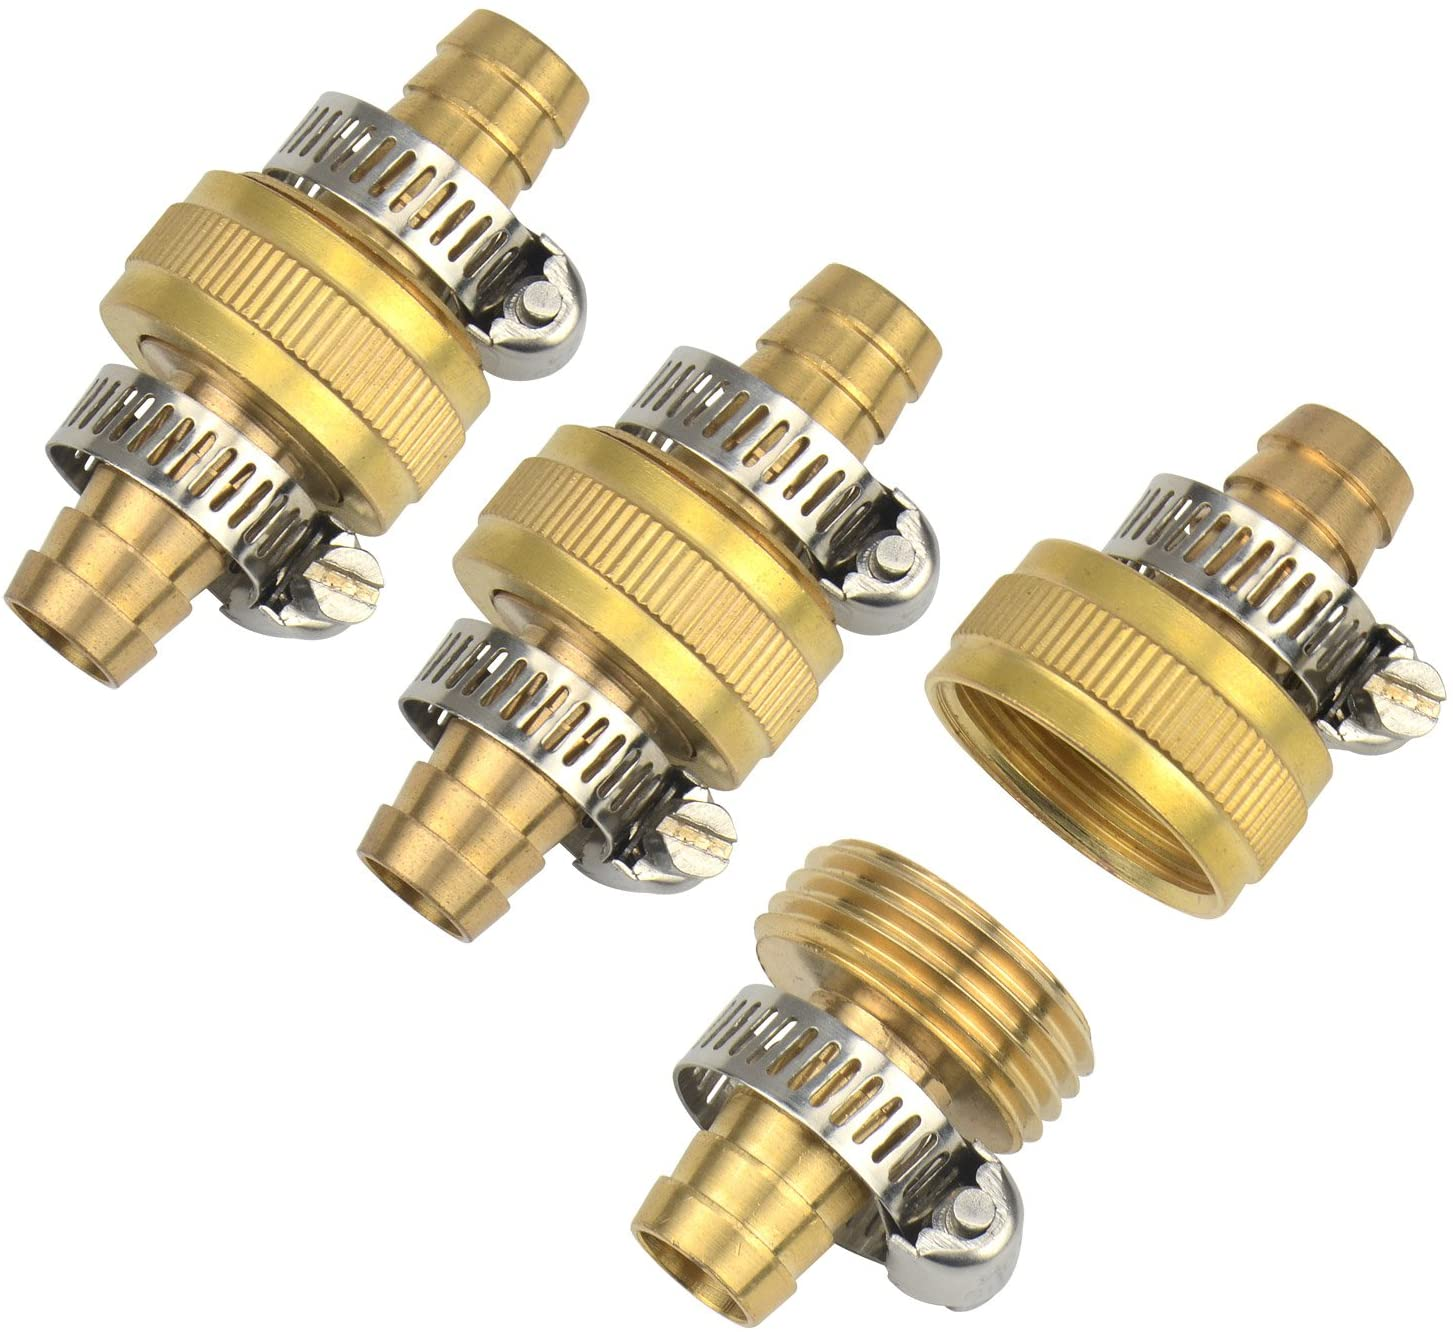 "3Sets 5/8"" Brass Garden Hose Mender End Repair Male Female Connector with Stainless Clamp"